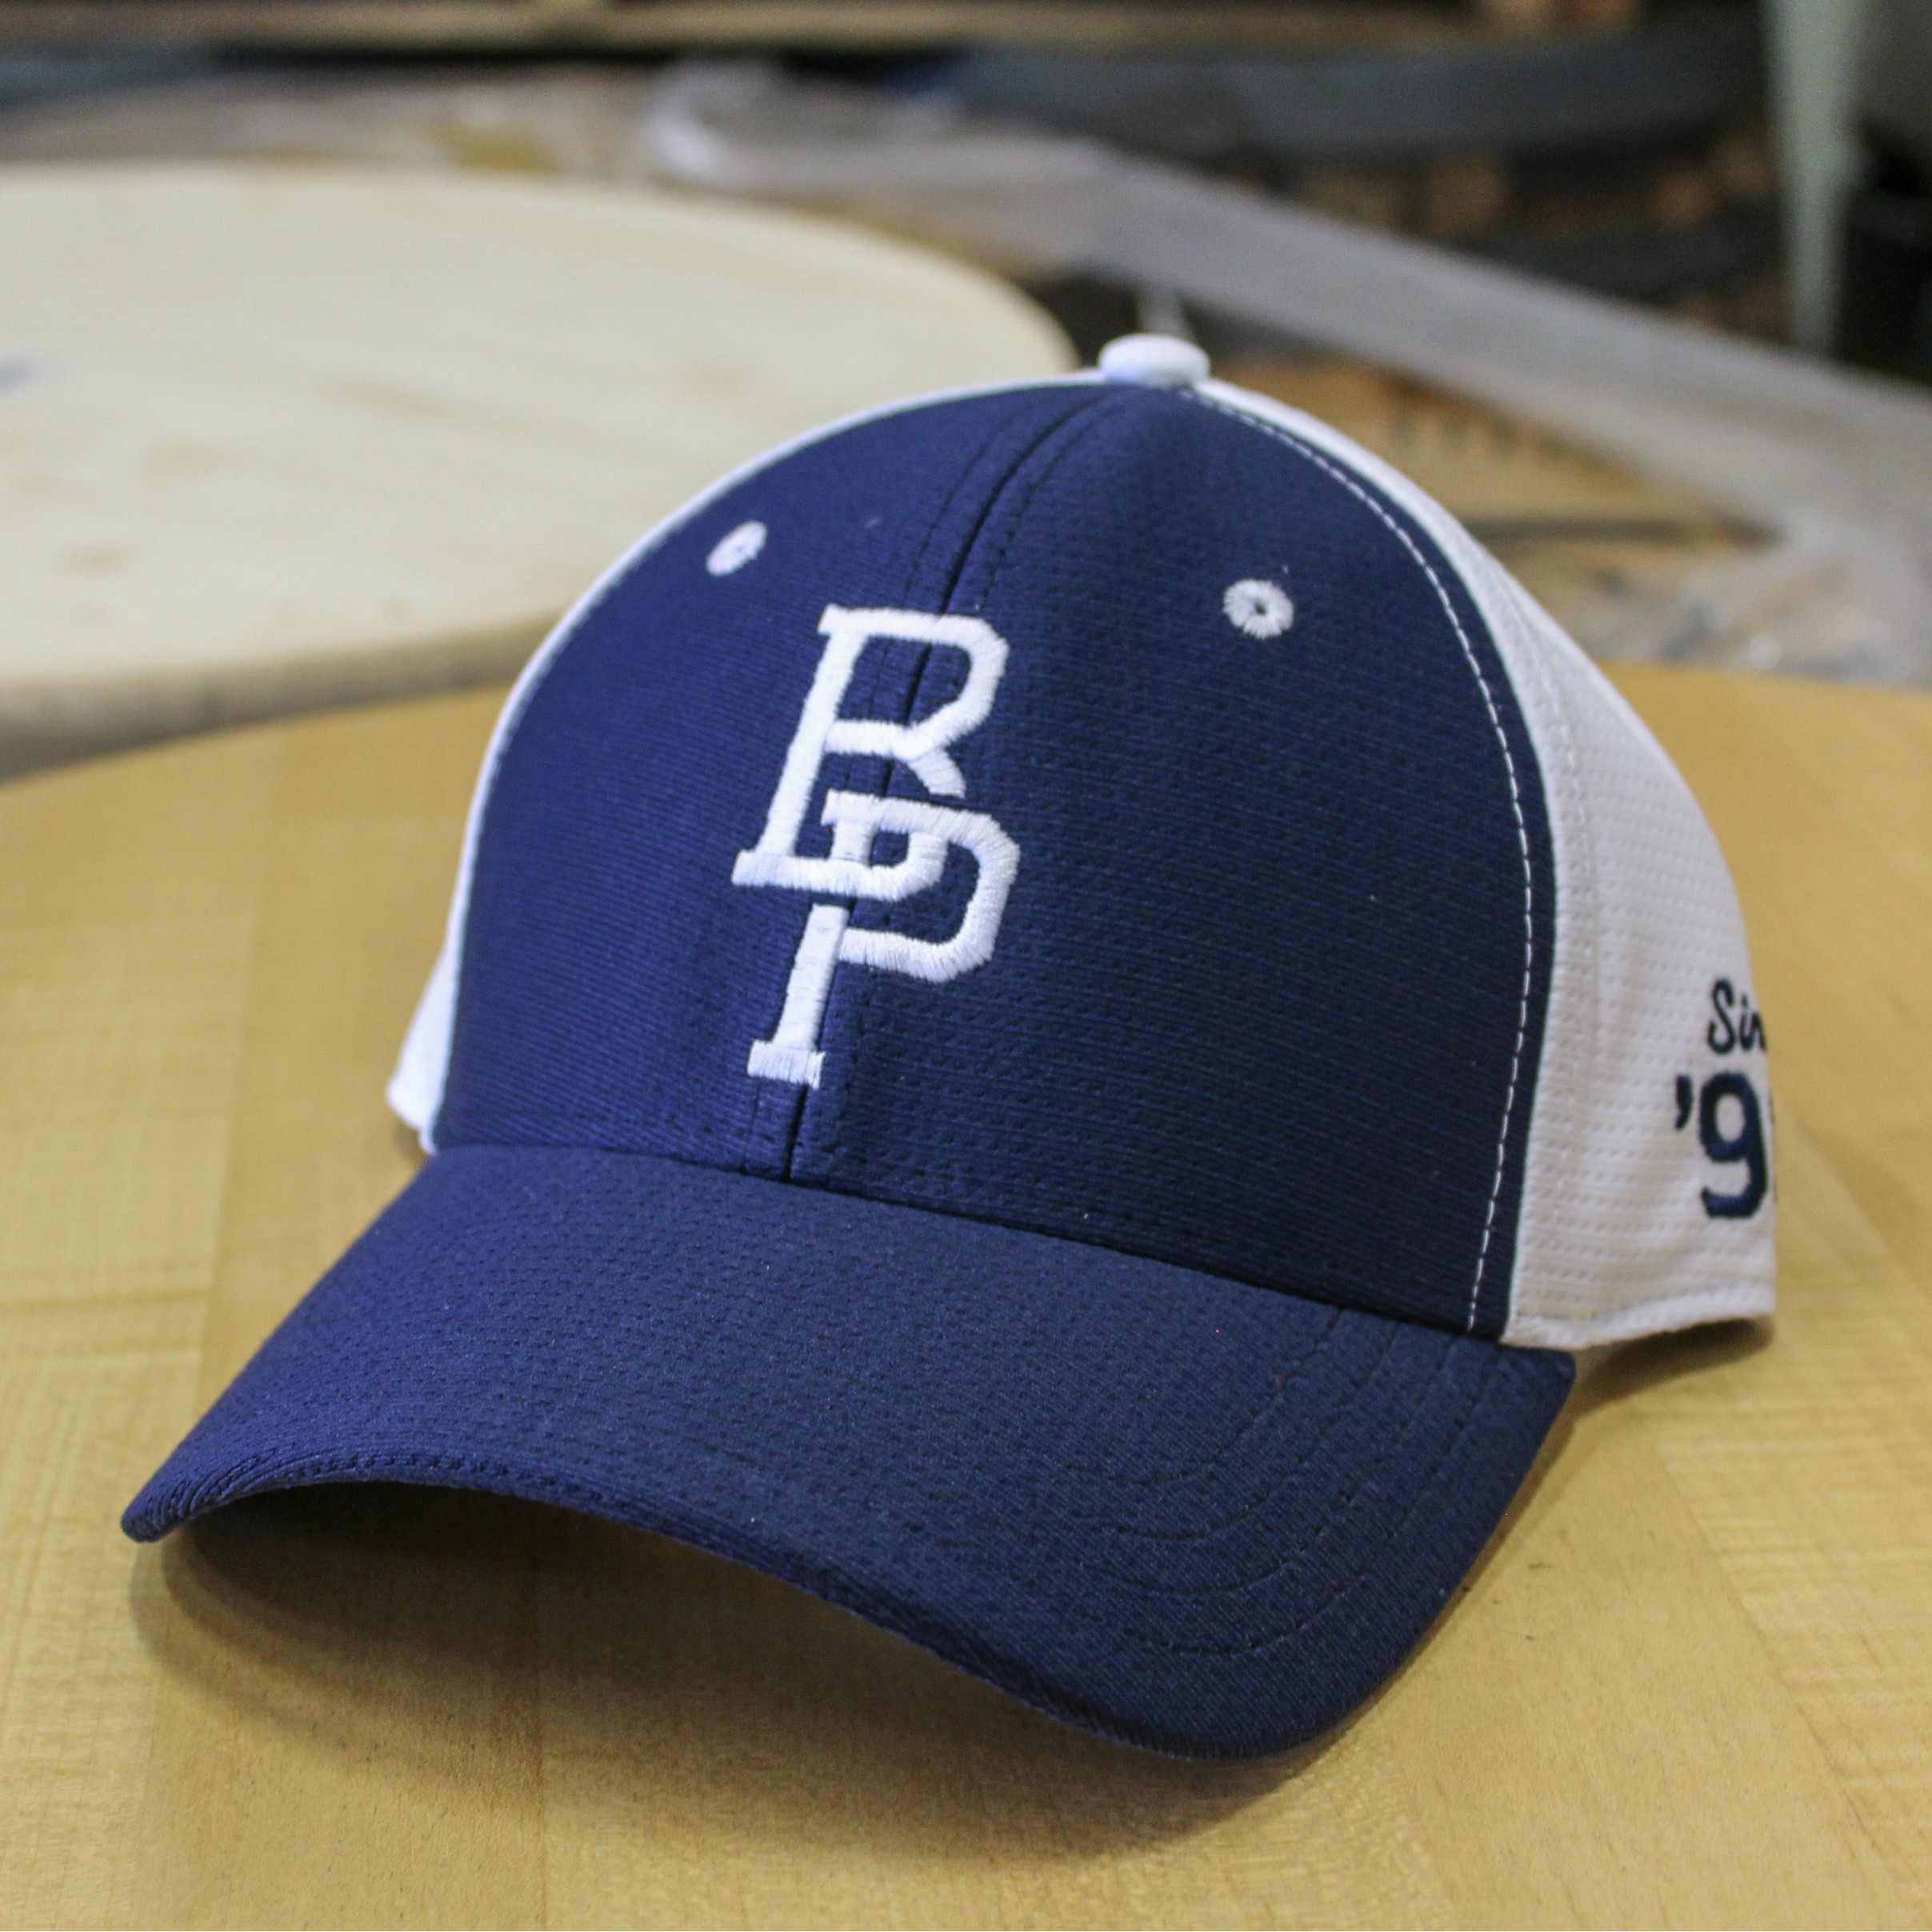 BP Navy and White Snapback MAIN